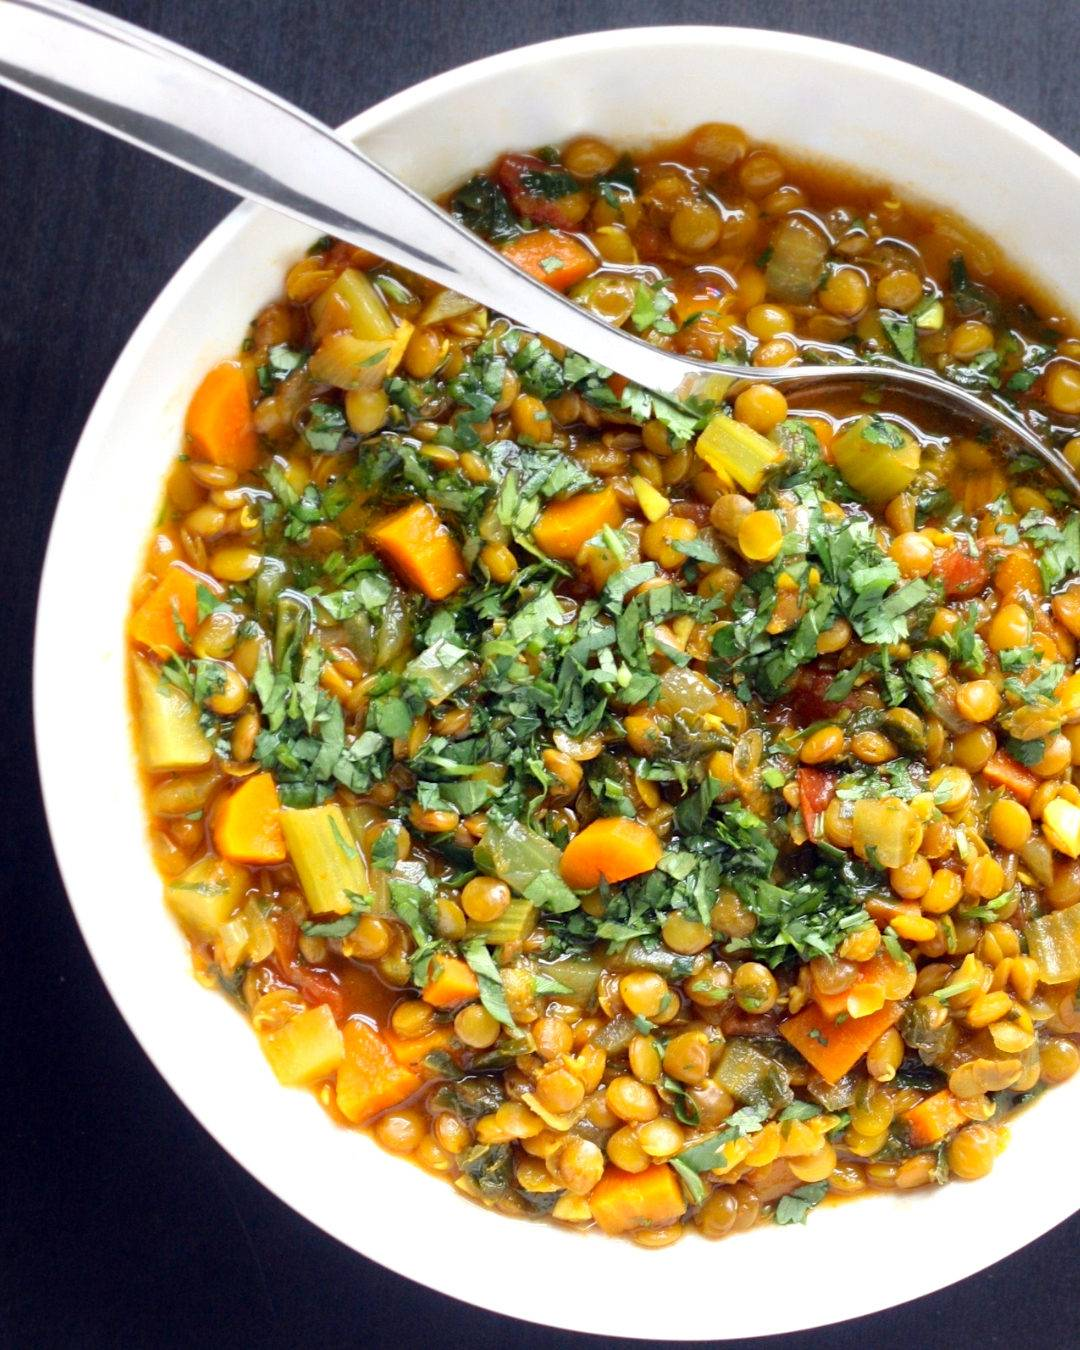 Turmeric Lentil and Greens Soup